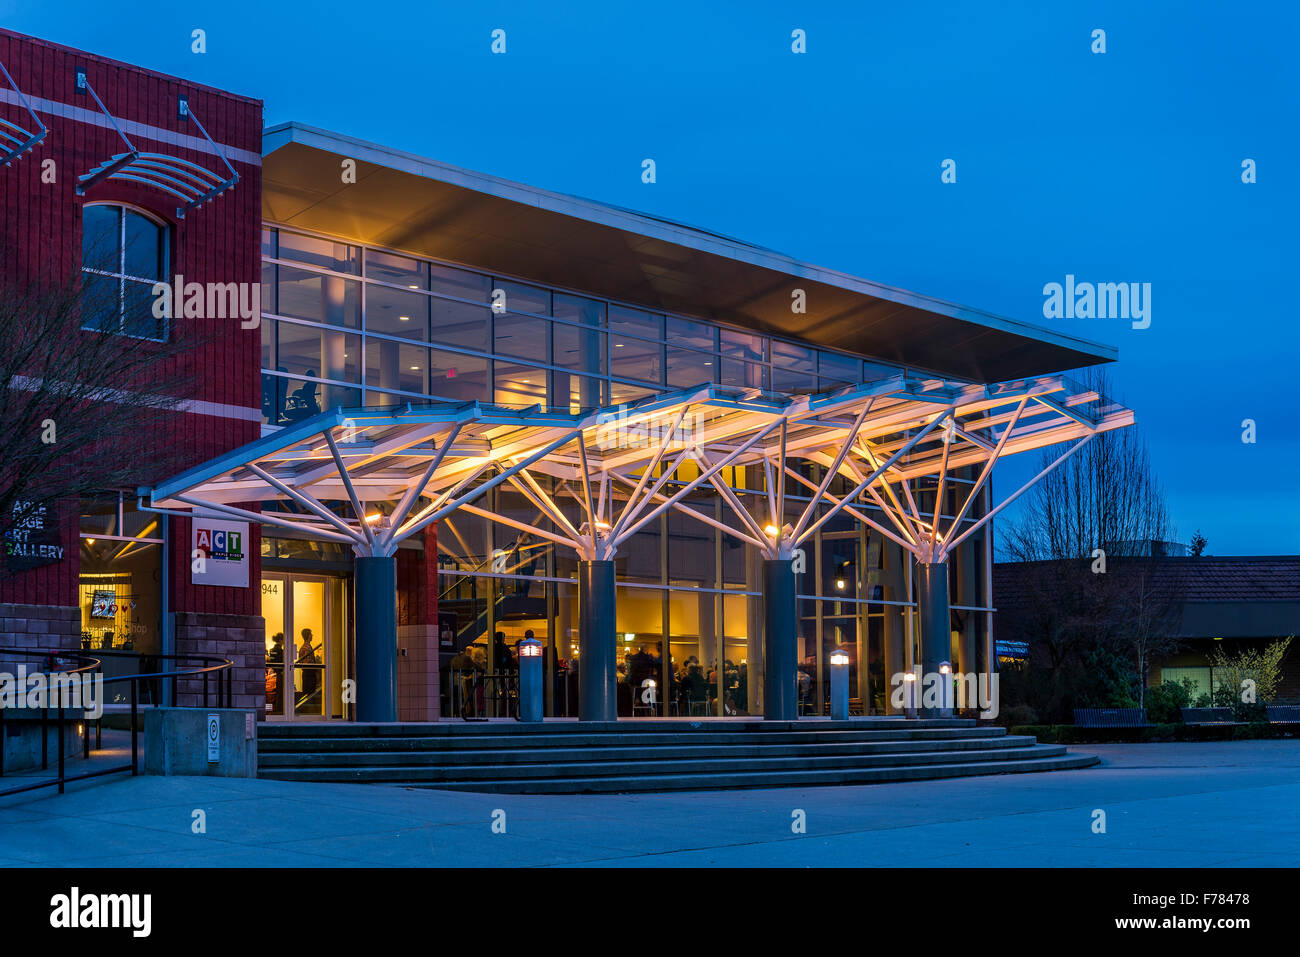 ACT, Arts Centre and Theatre Complex, District of Maple Ridge, British Columbia, Canada - Stock Image